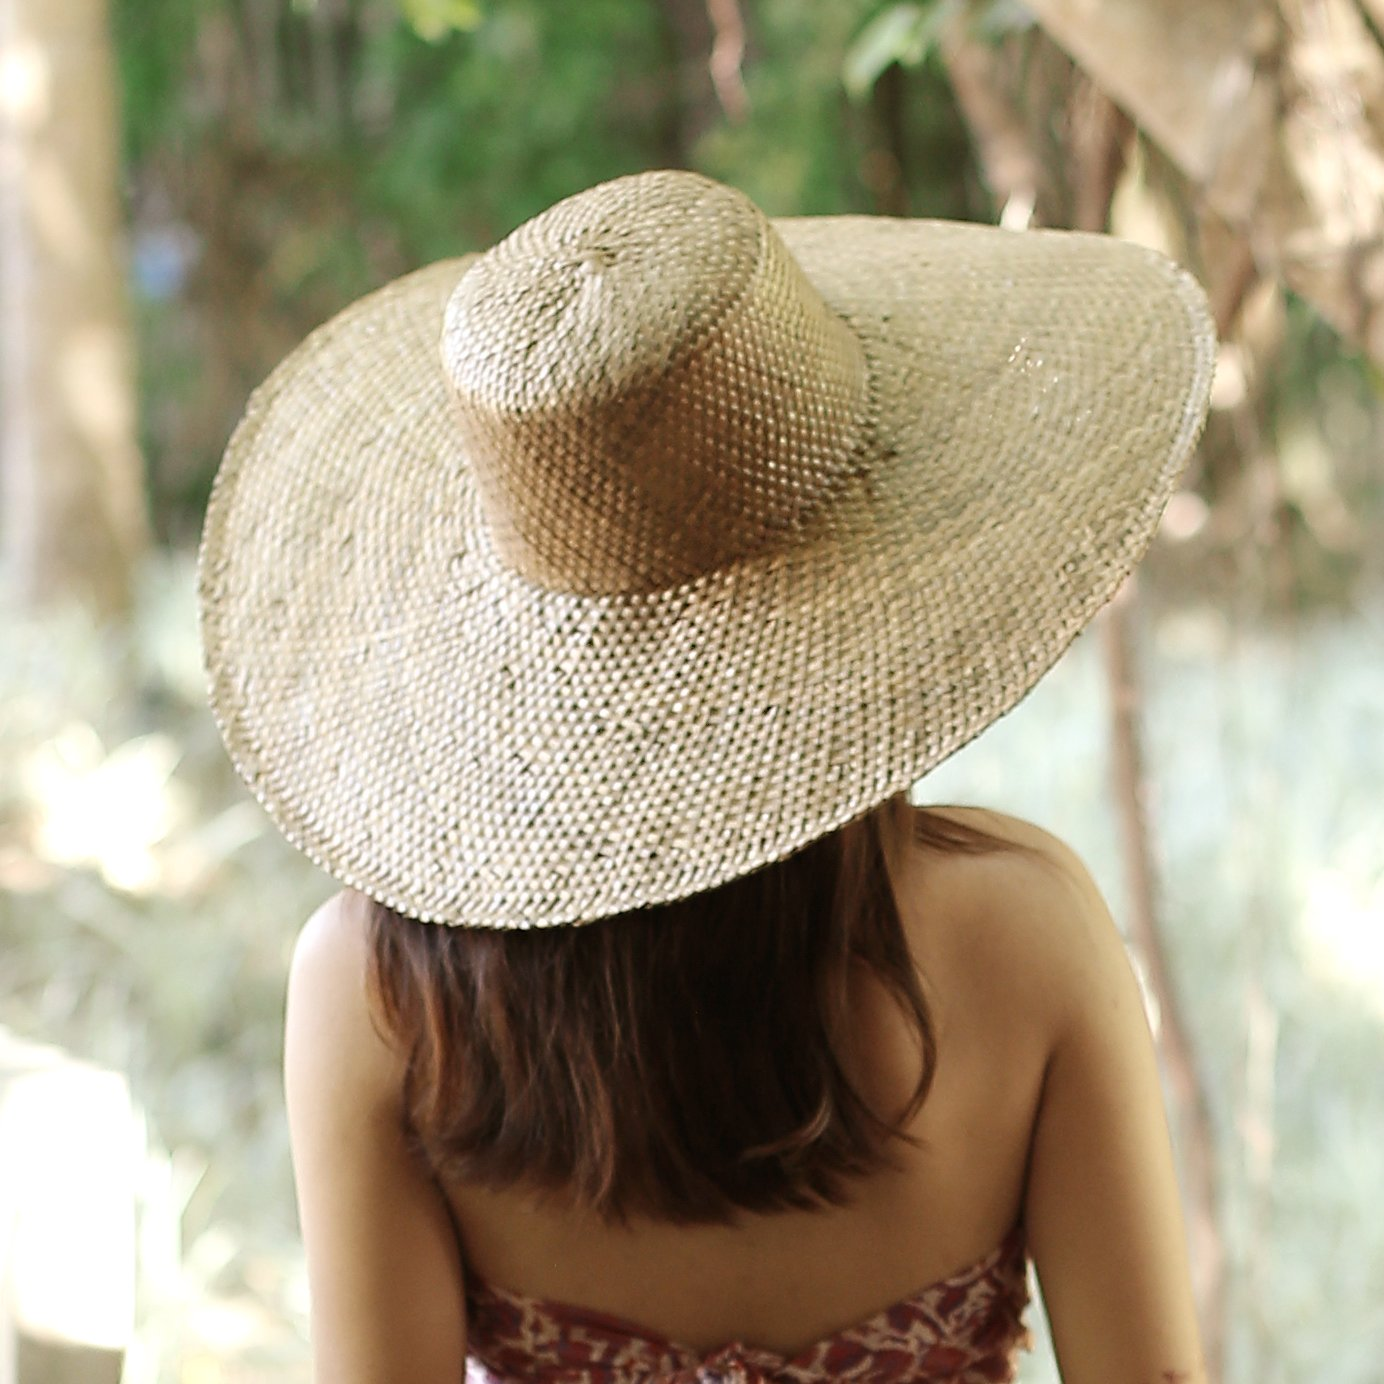 Straw Hat Swasti Wide Round Palm in Tan Beige